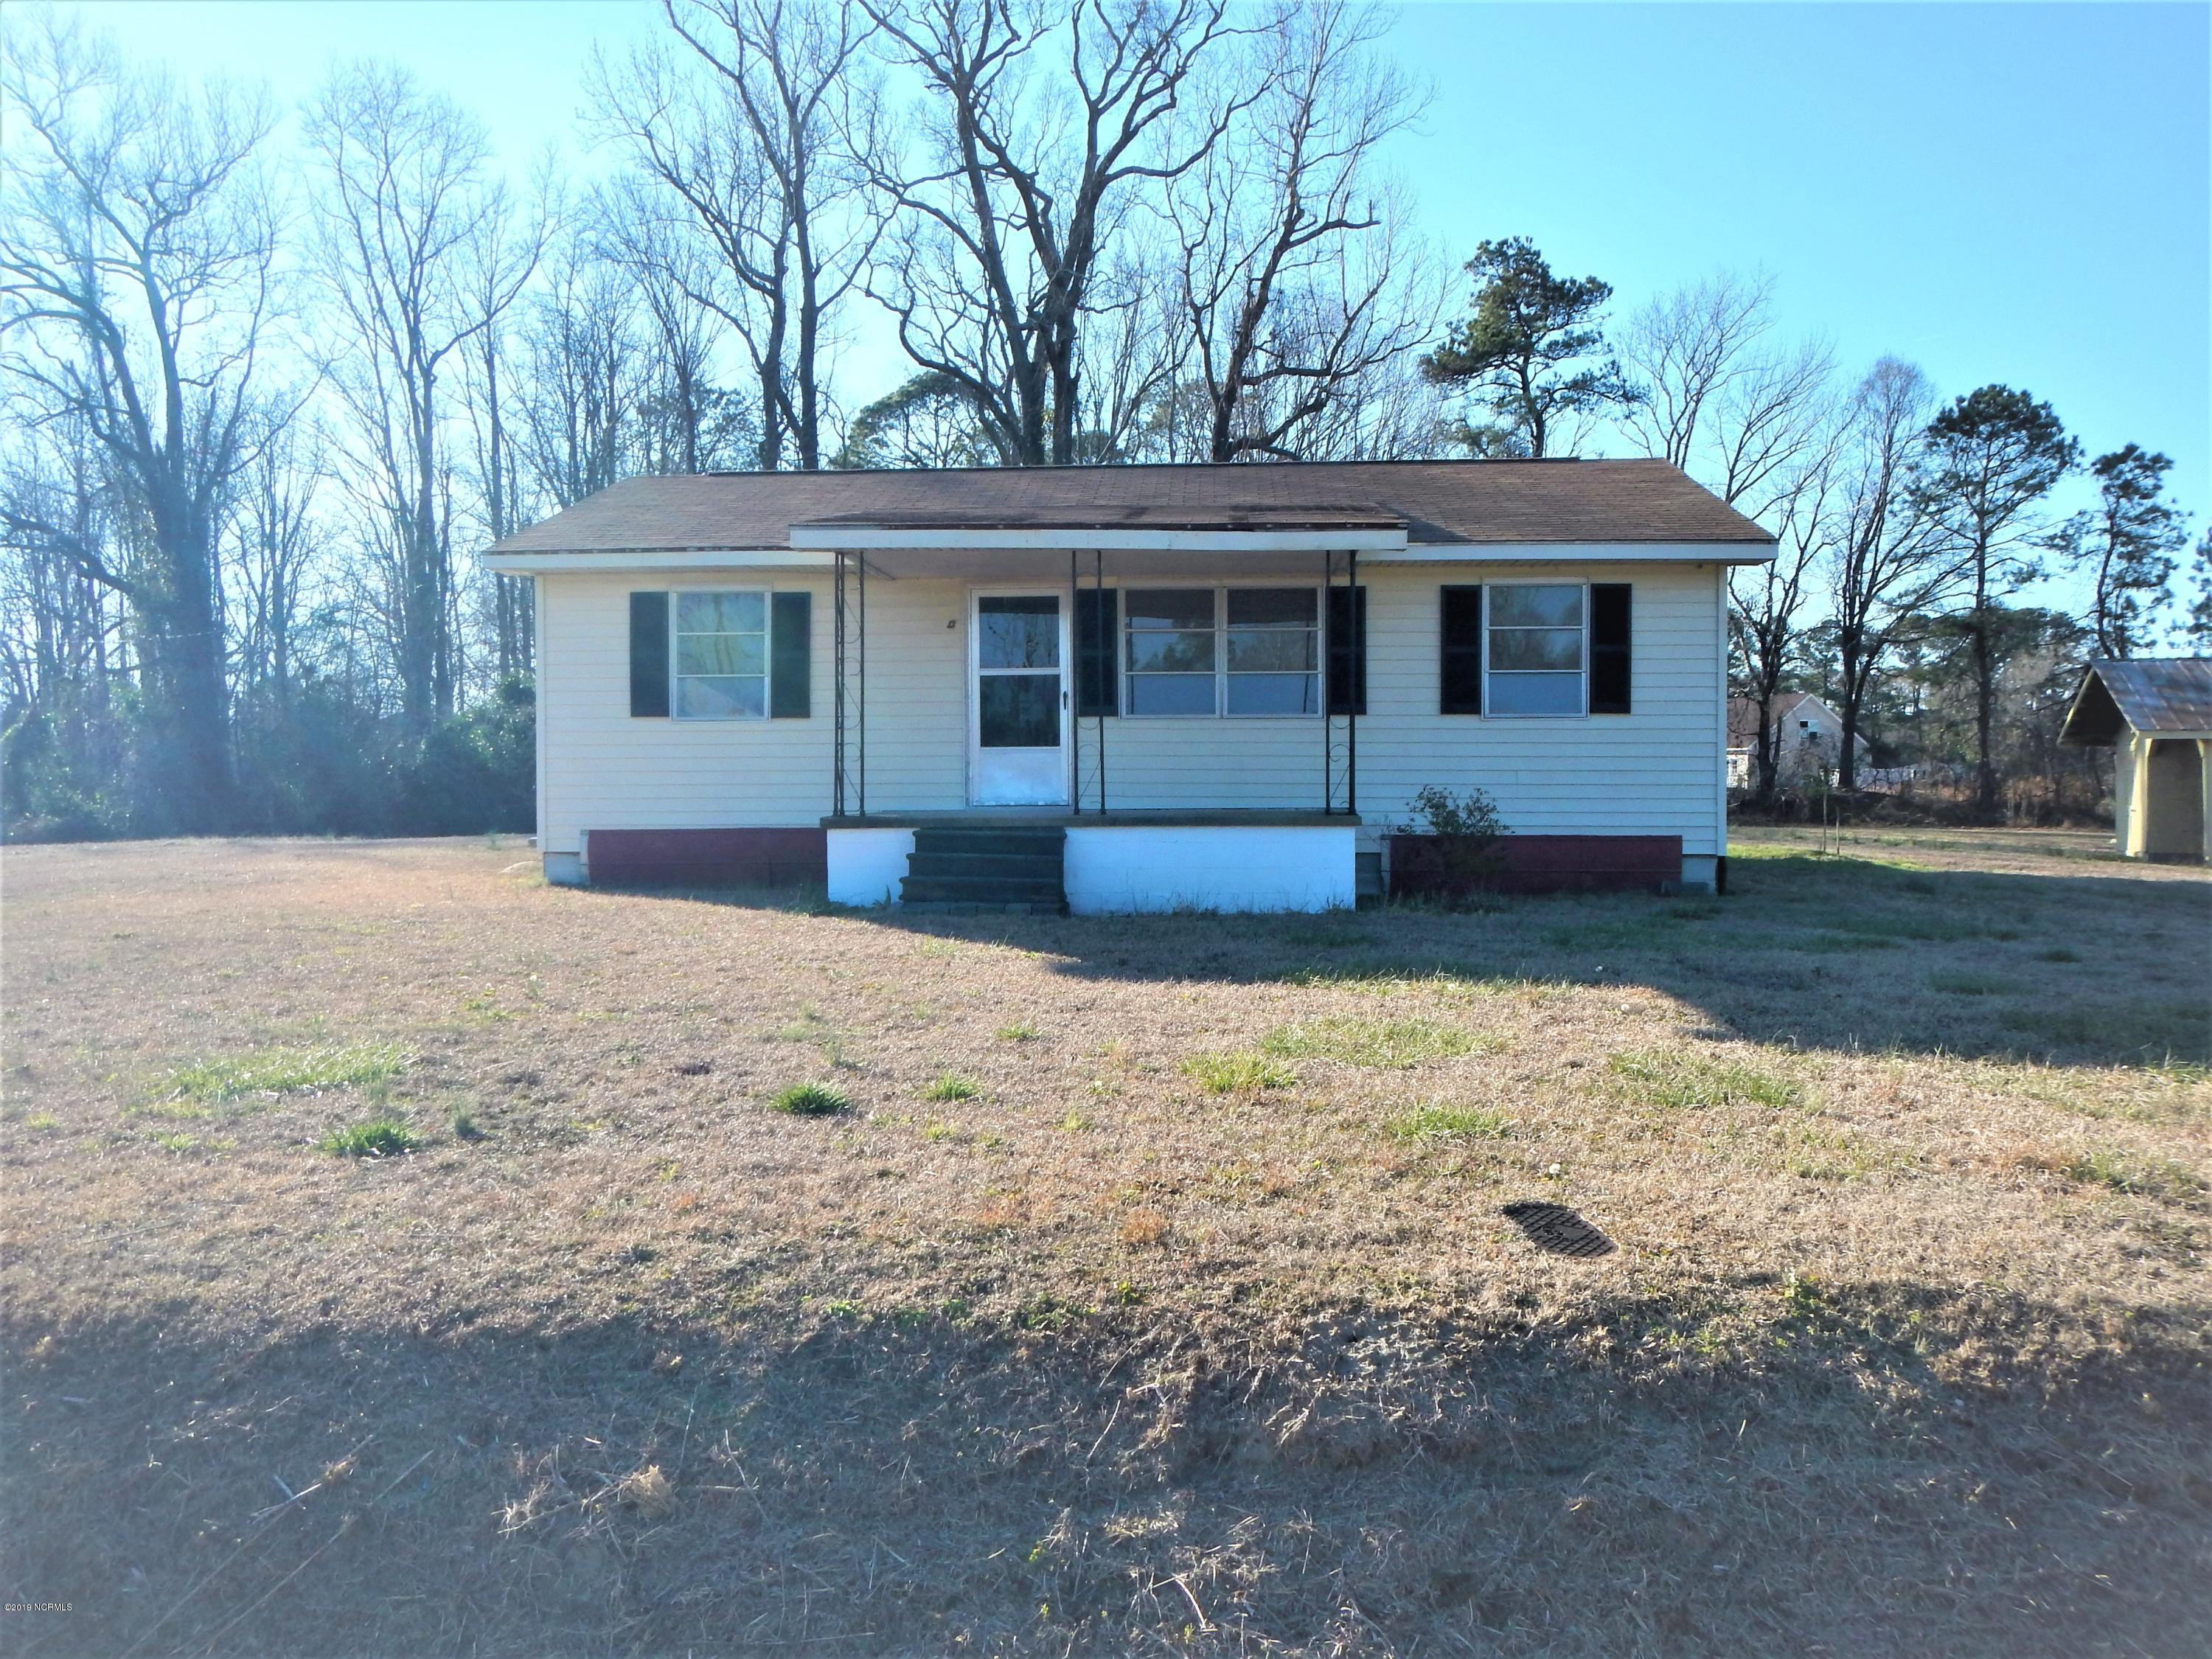 240 Quinn Road, Cove City, North Carolina, 3 Bedrooms Bedrooms, 5 Rooms Rooms,1 BathroomBathrooms,Single family residence,For sale,Quinn,100148719